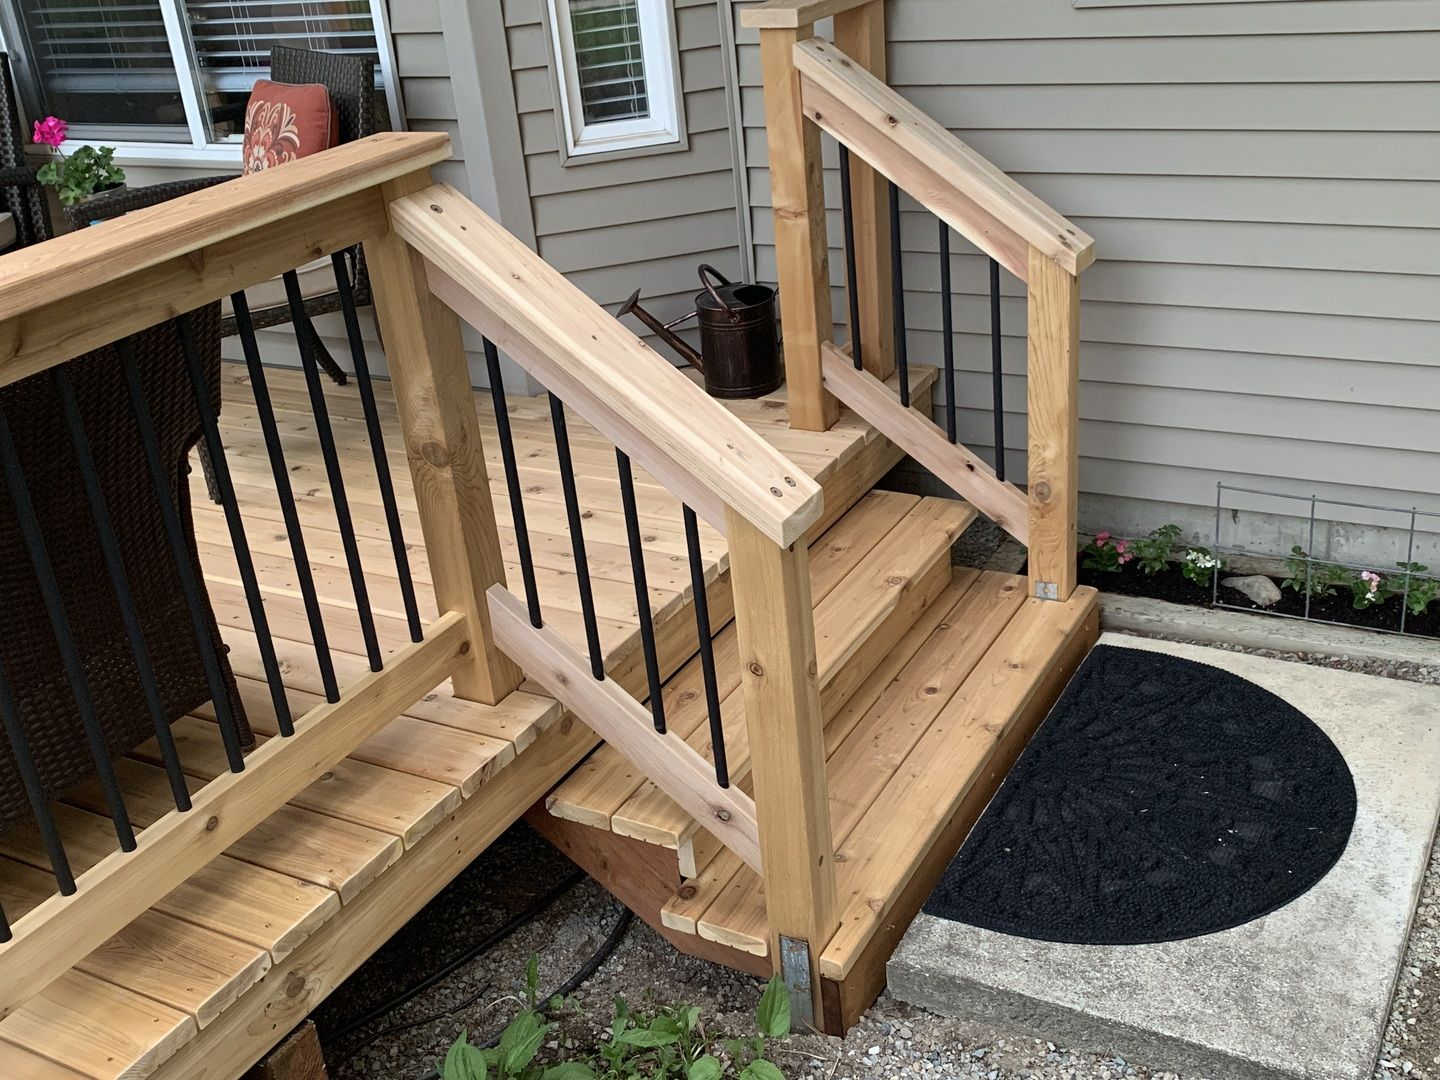 Classic Round Aluminum Balusters By Deckorators Aluminum Balusters Deck Balusters Railing Design